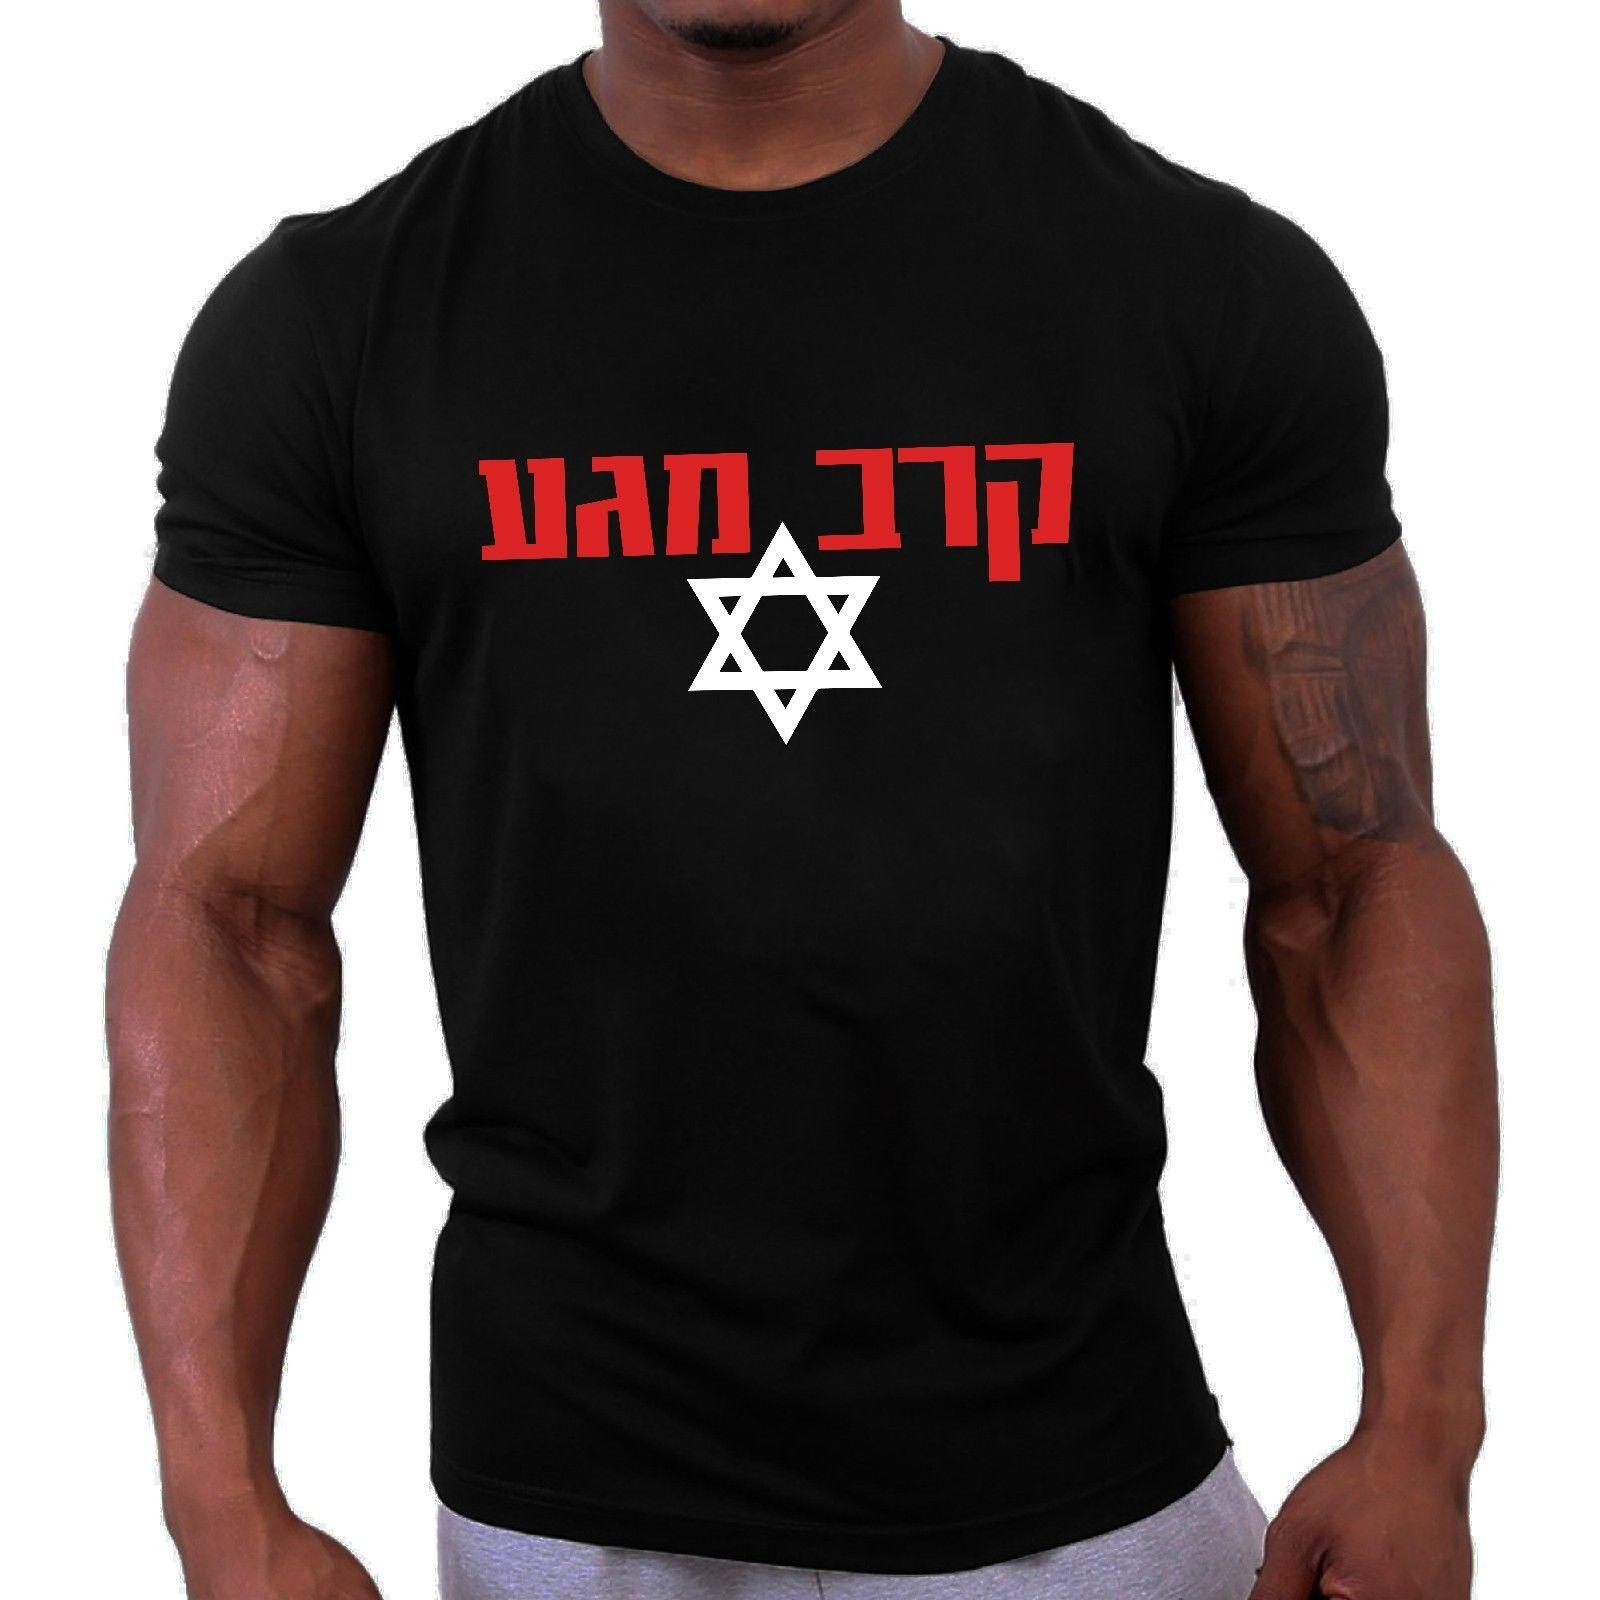 655397cbec53 Krav Maga Military T Shirt Self Defence Fighting System Israel Defense  Force Brand Cotton Men Clothing Slim Fit T Shirt Great Tee Shirt Designs  Funny Screen ...